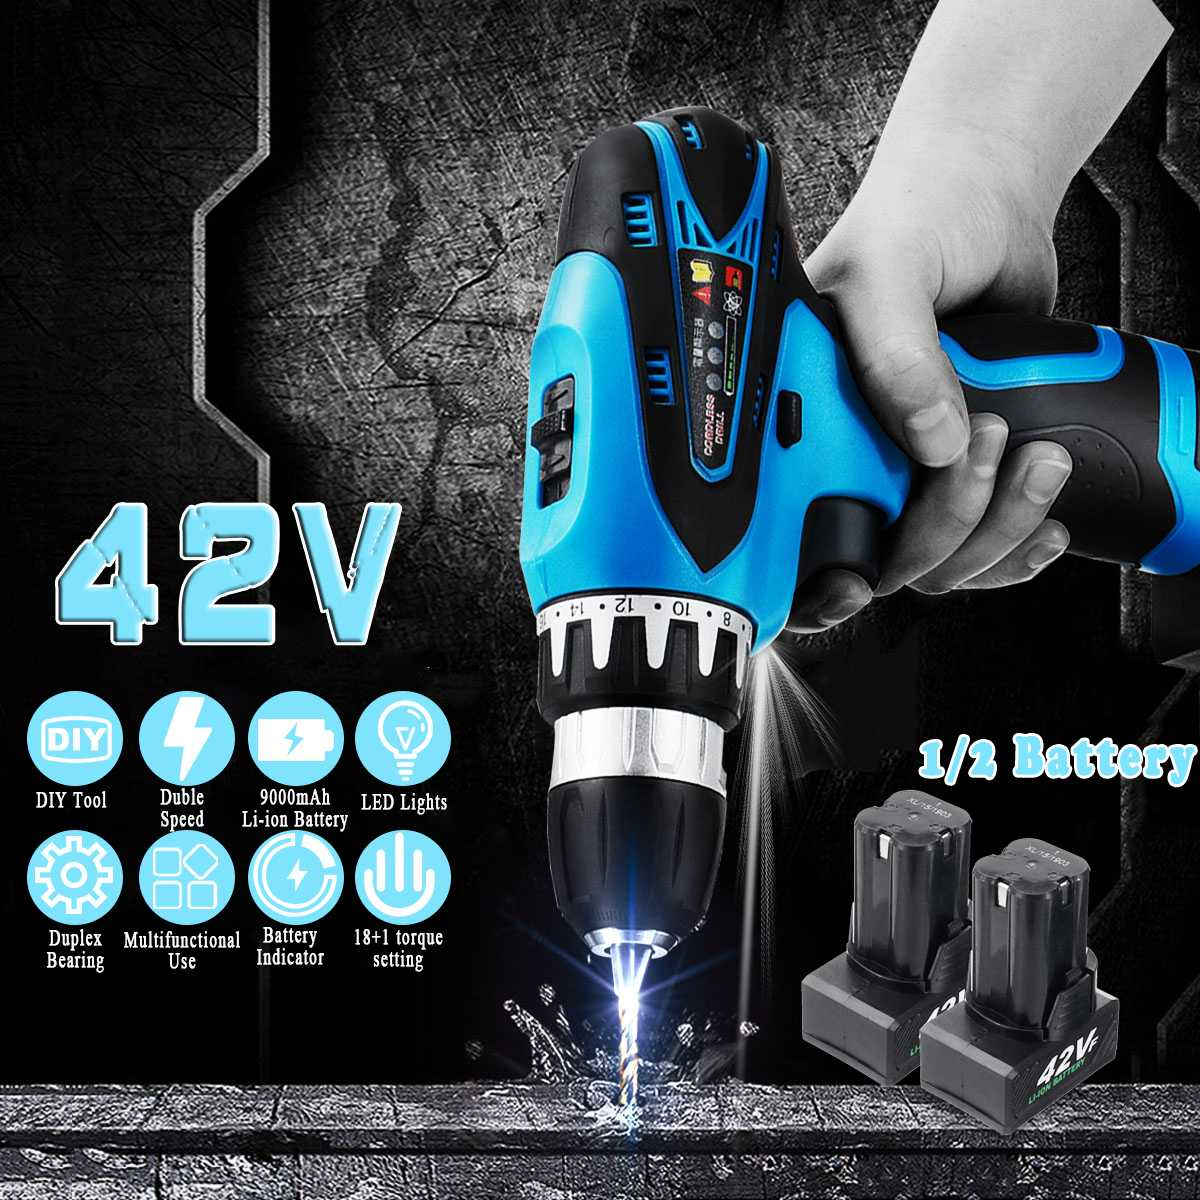 Electric Drill Screwdriver 42V Cordless Drill Adjustment 2-Speed Torque Rechargeable LED Lighting With1/2 Battery Power Tools